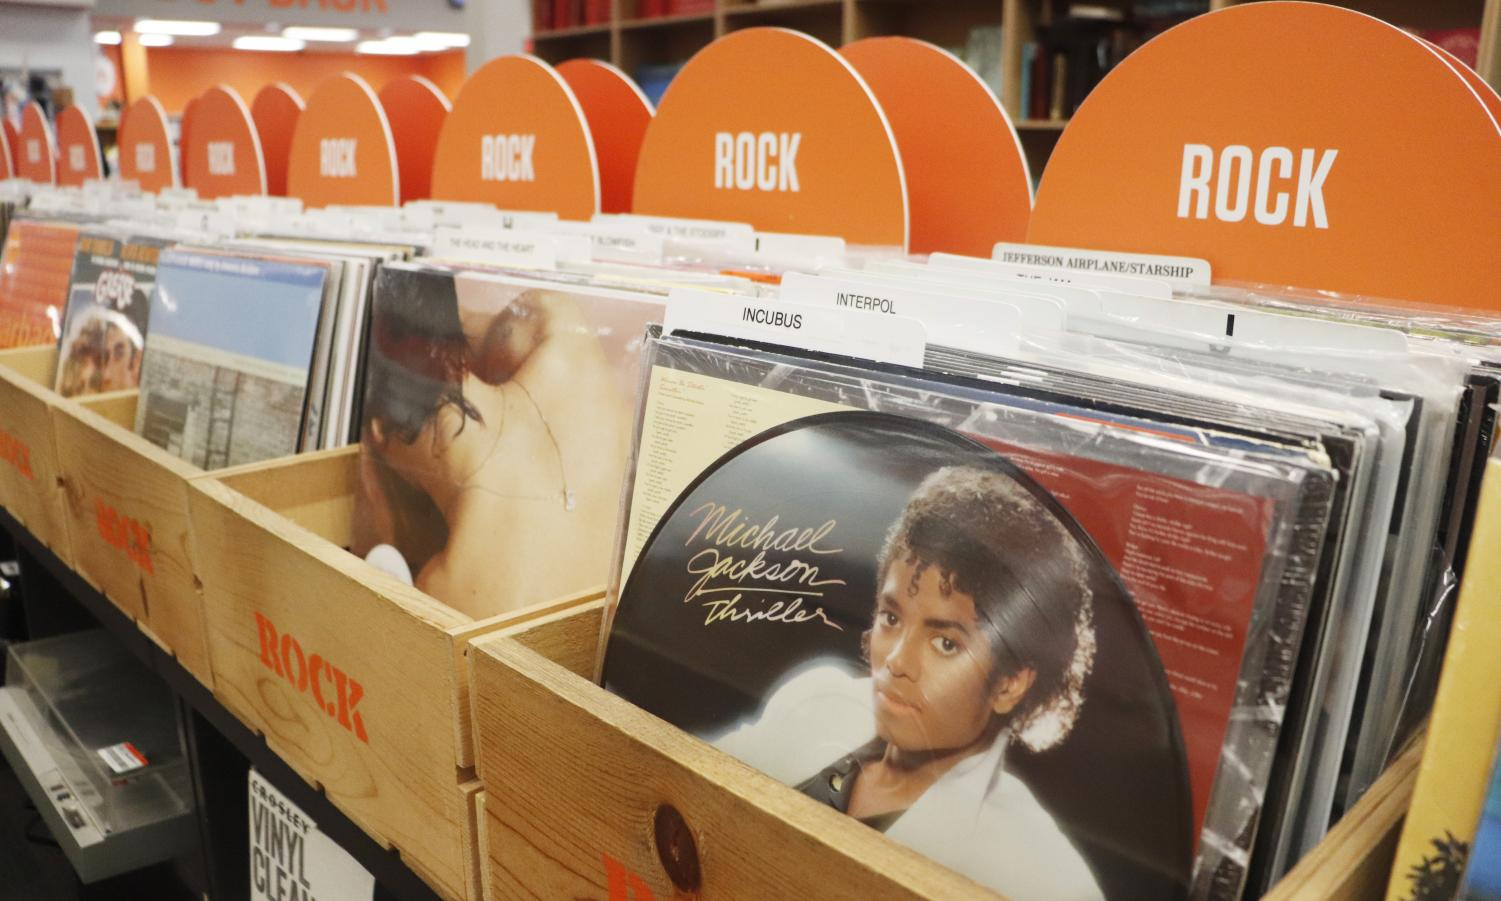 2nd and Charles has a vinyl section, which includes turn tables, for sale. Vinyl's popularity grew in part for its historical value.